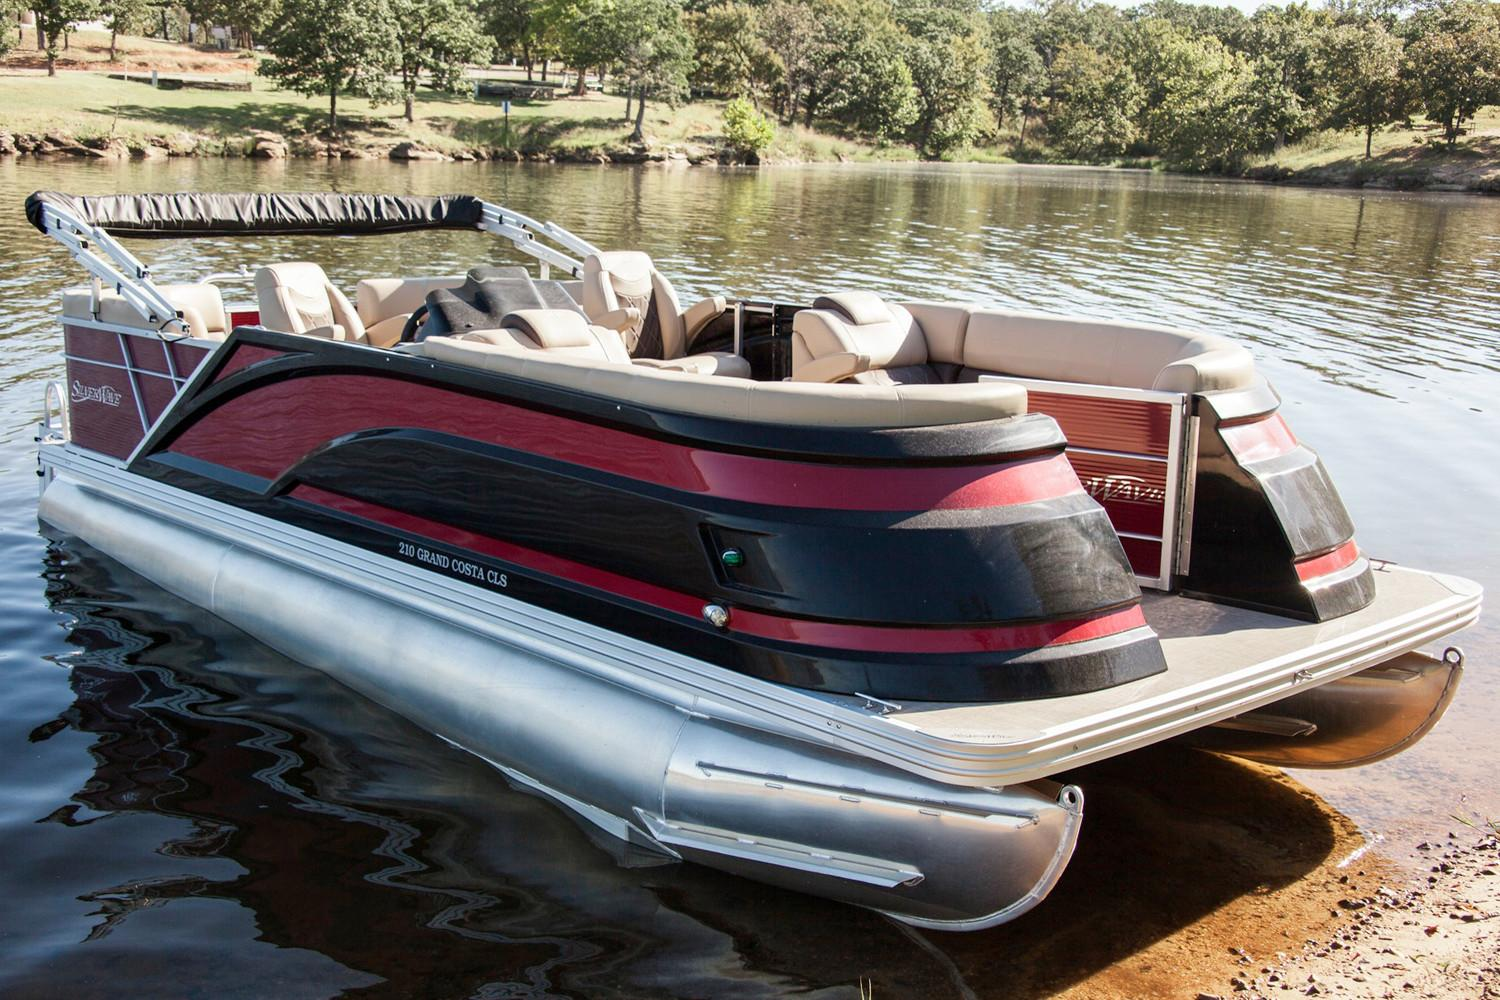 2018 Silver Wave 210 GRAND COSTA CLS in Pensacola, Florida